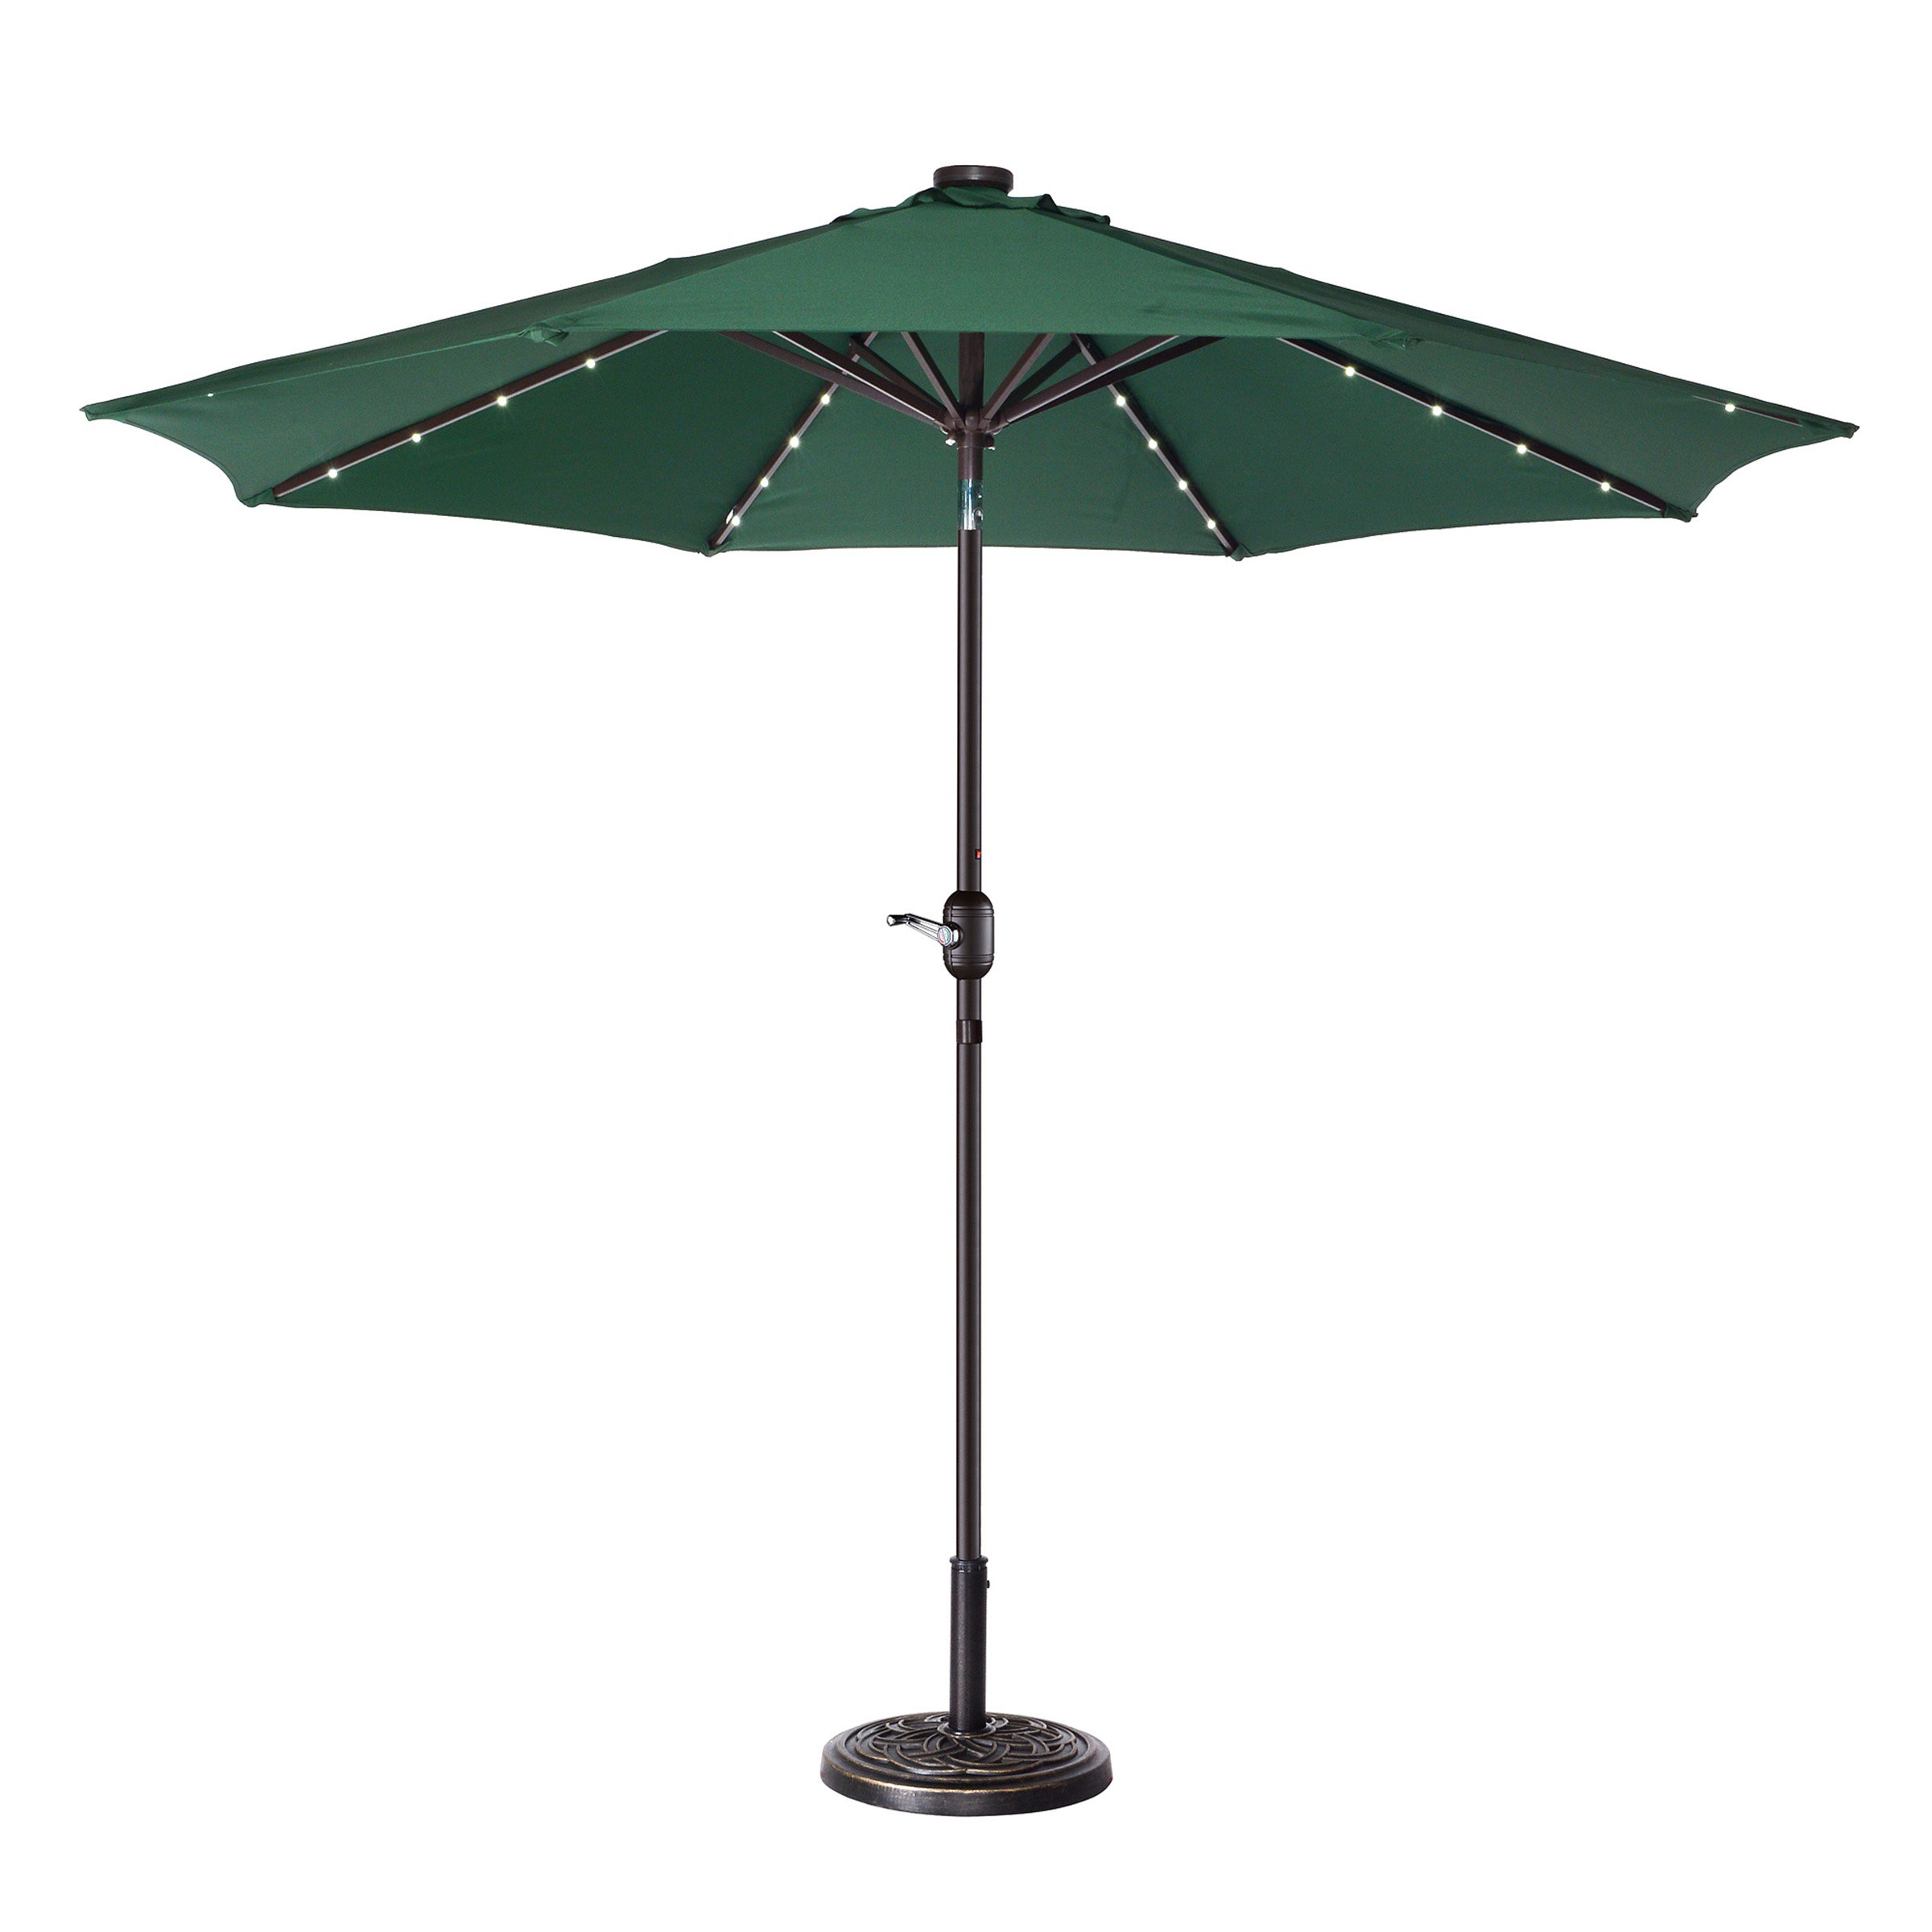 Coggeshall Led Lighted 9' Market Umbrella Regarding Preferred Coggeshall Led Lighted Market Umbrellas (View 2 of 20)